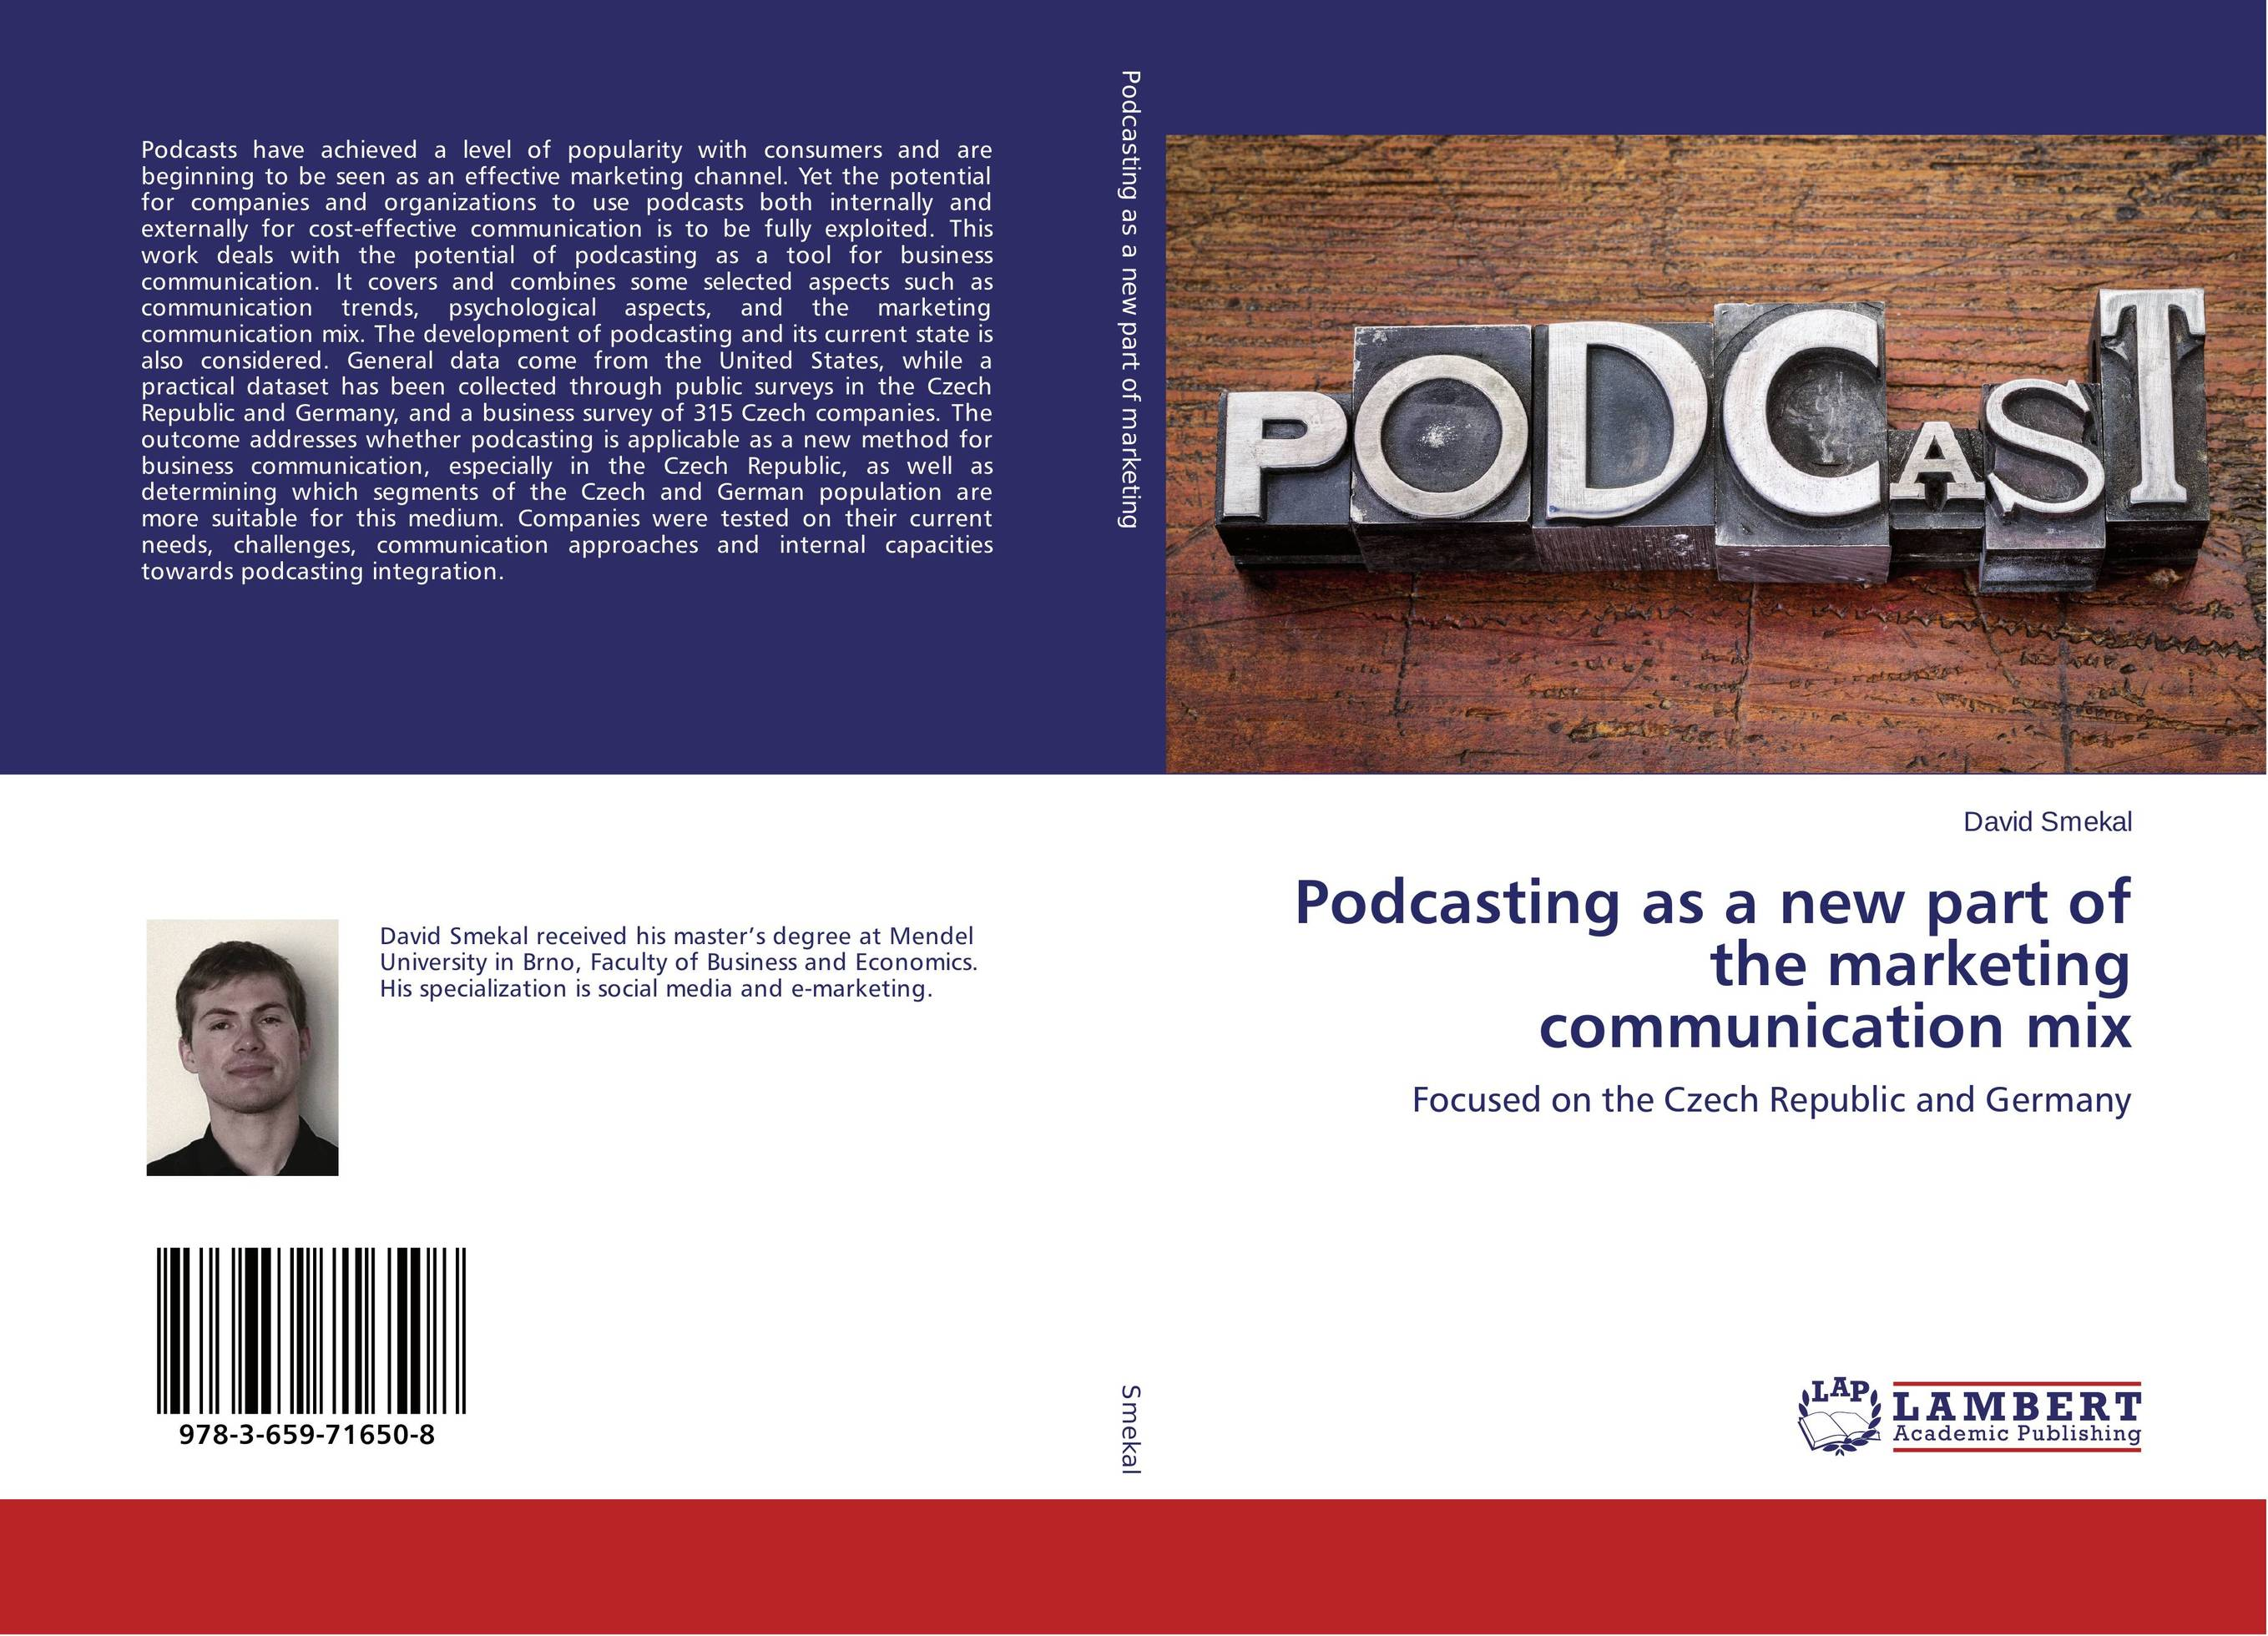 Podcasting as a new part of the marketing communication mix tamara gillis the iabc handbook of organizational communication a guide to internal communication public relations marketing and leadership